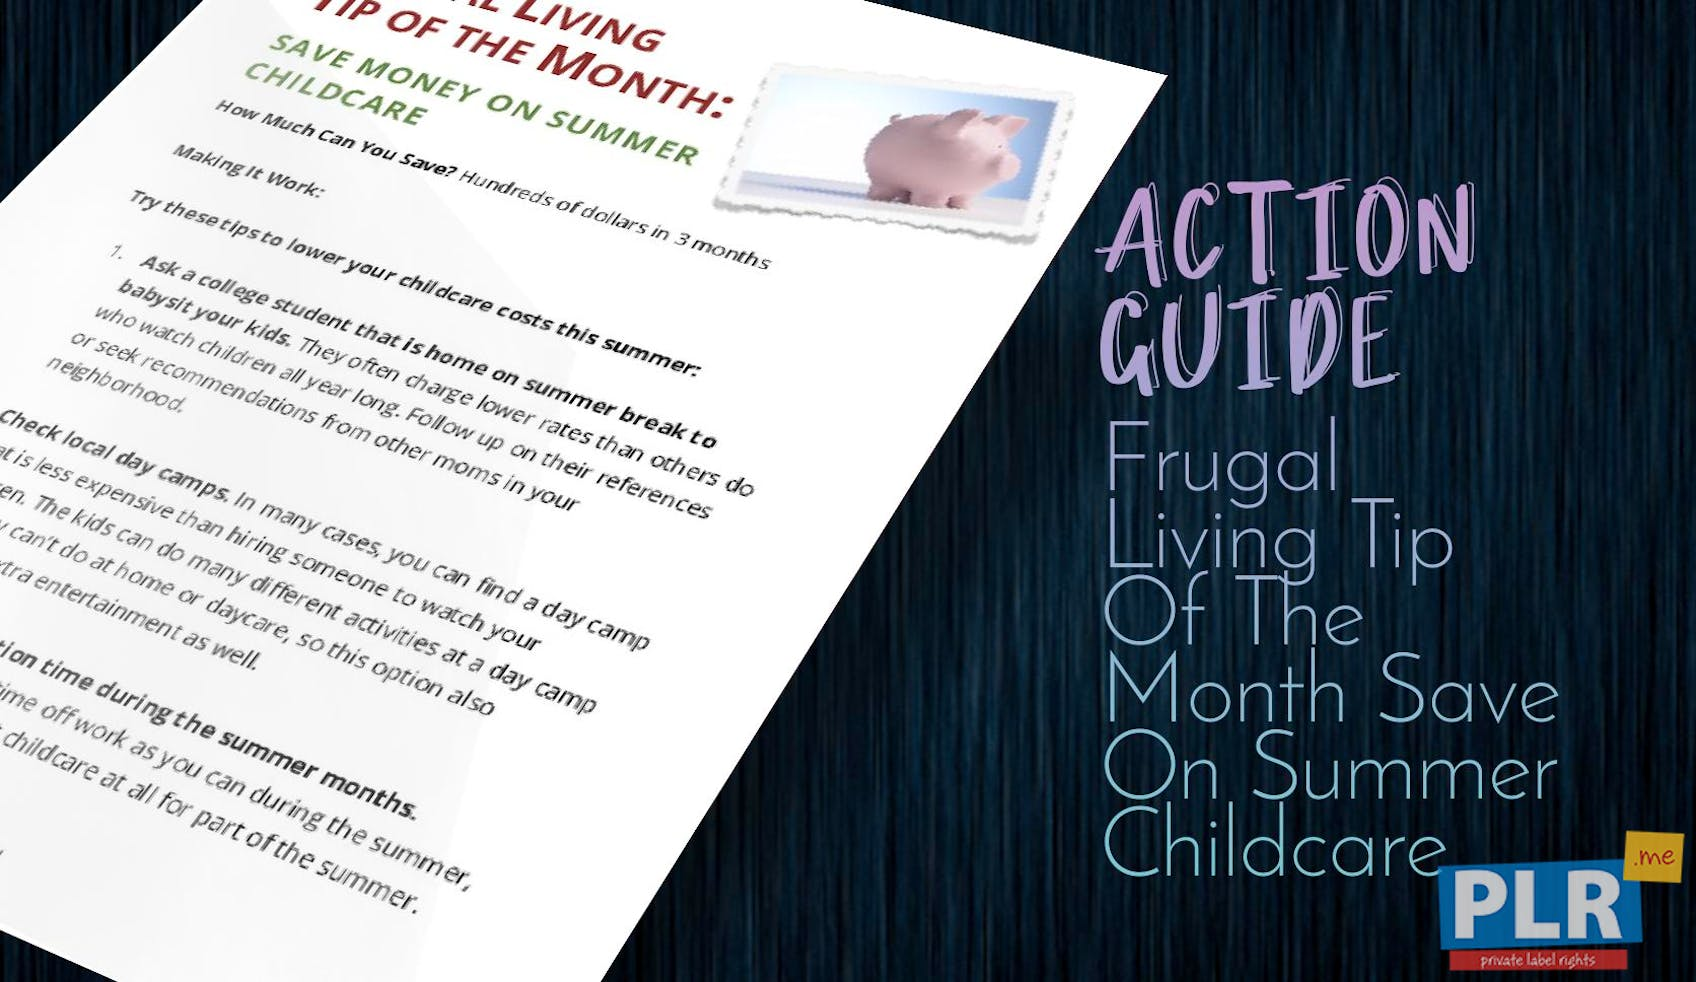 Frugal Living Tip Of The Month Save On Summer Childcare